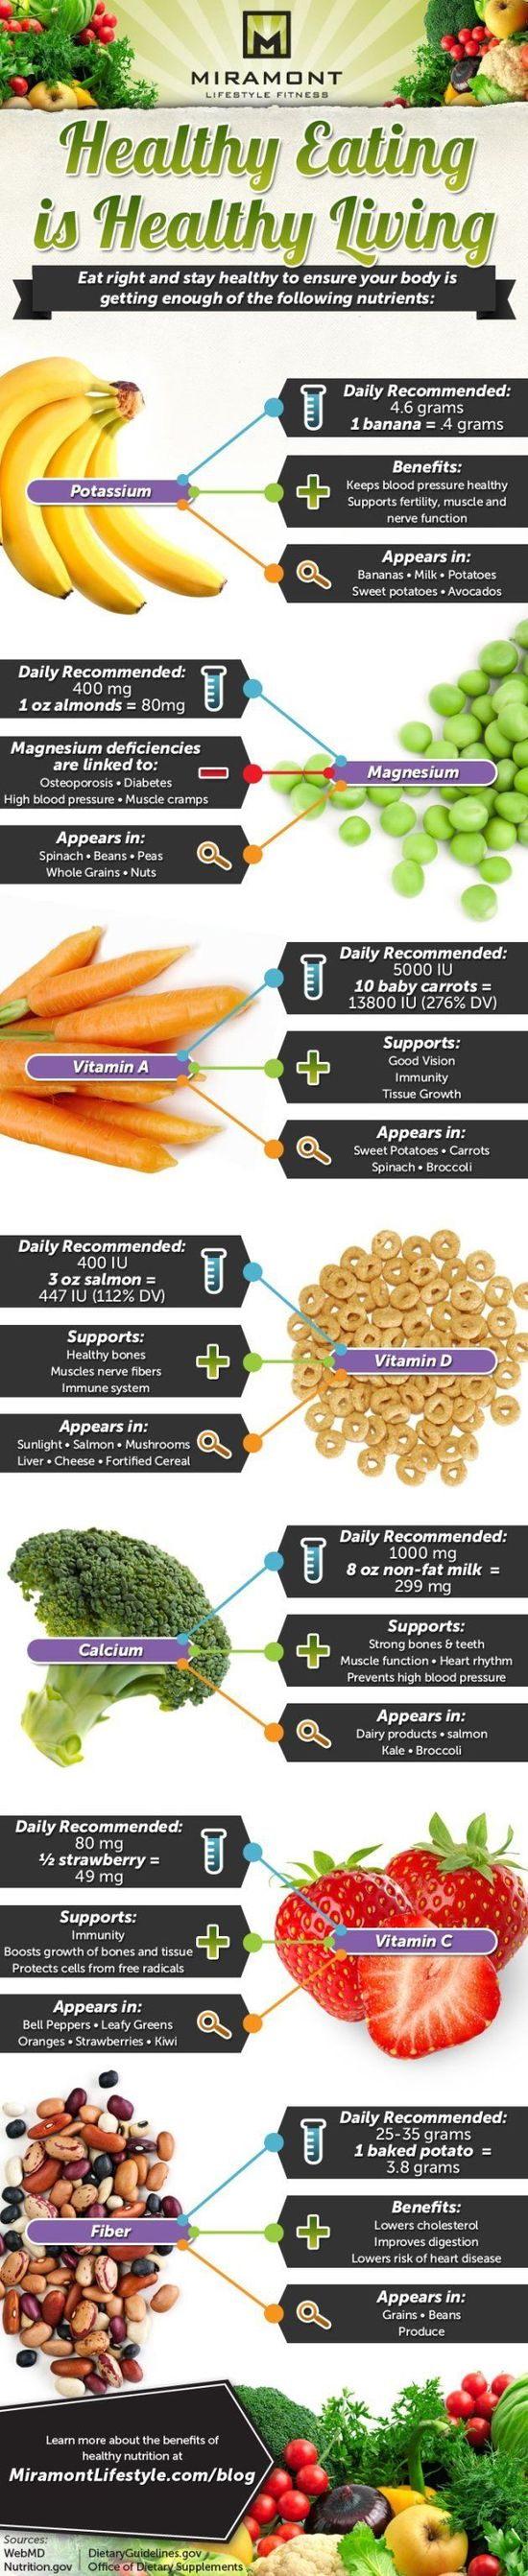 Natural Health Network provides healthy nutrition and high quality science based nutraceuticals via bittopper.com